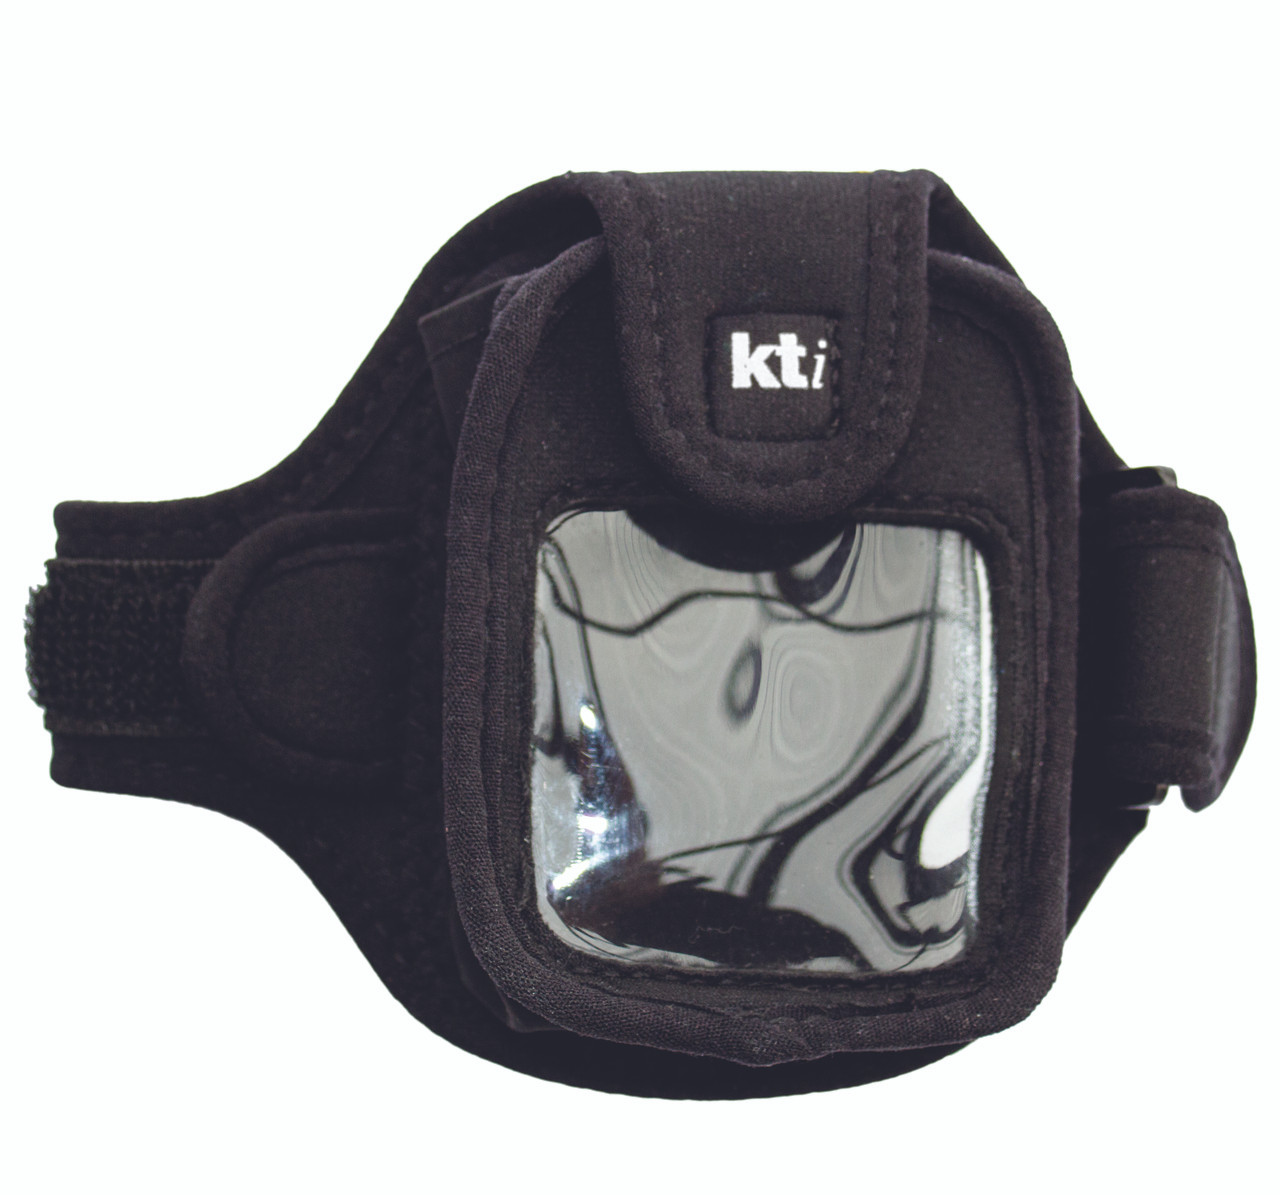 KTi PLB Locator Beacon Sports Armband